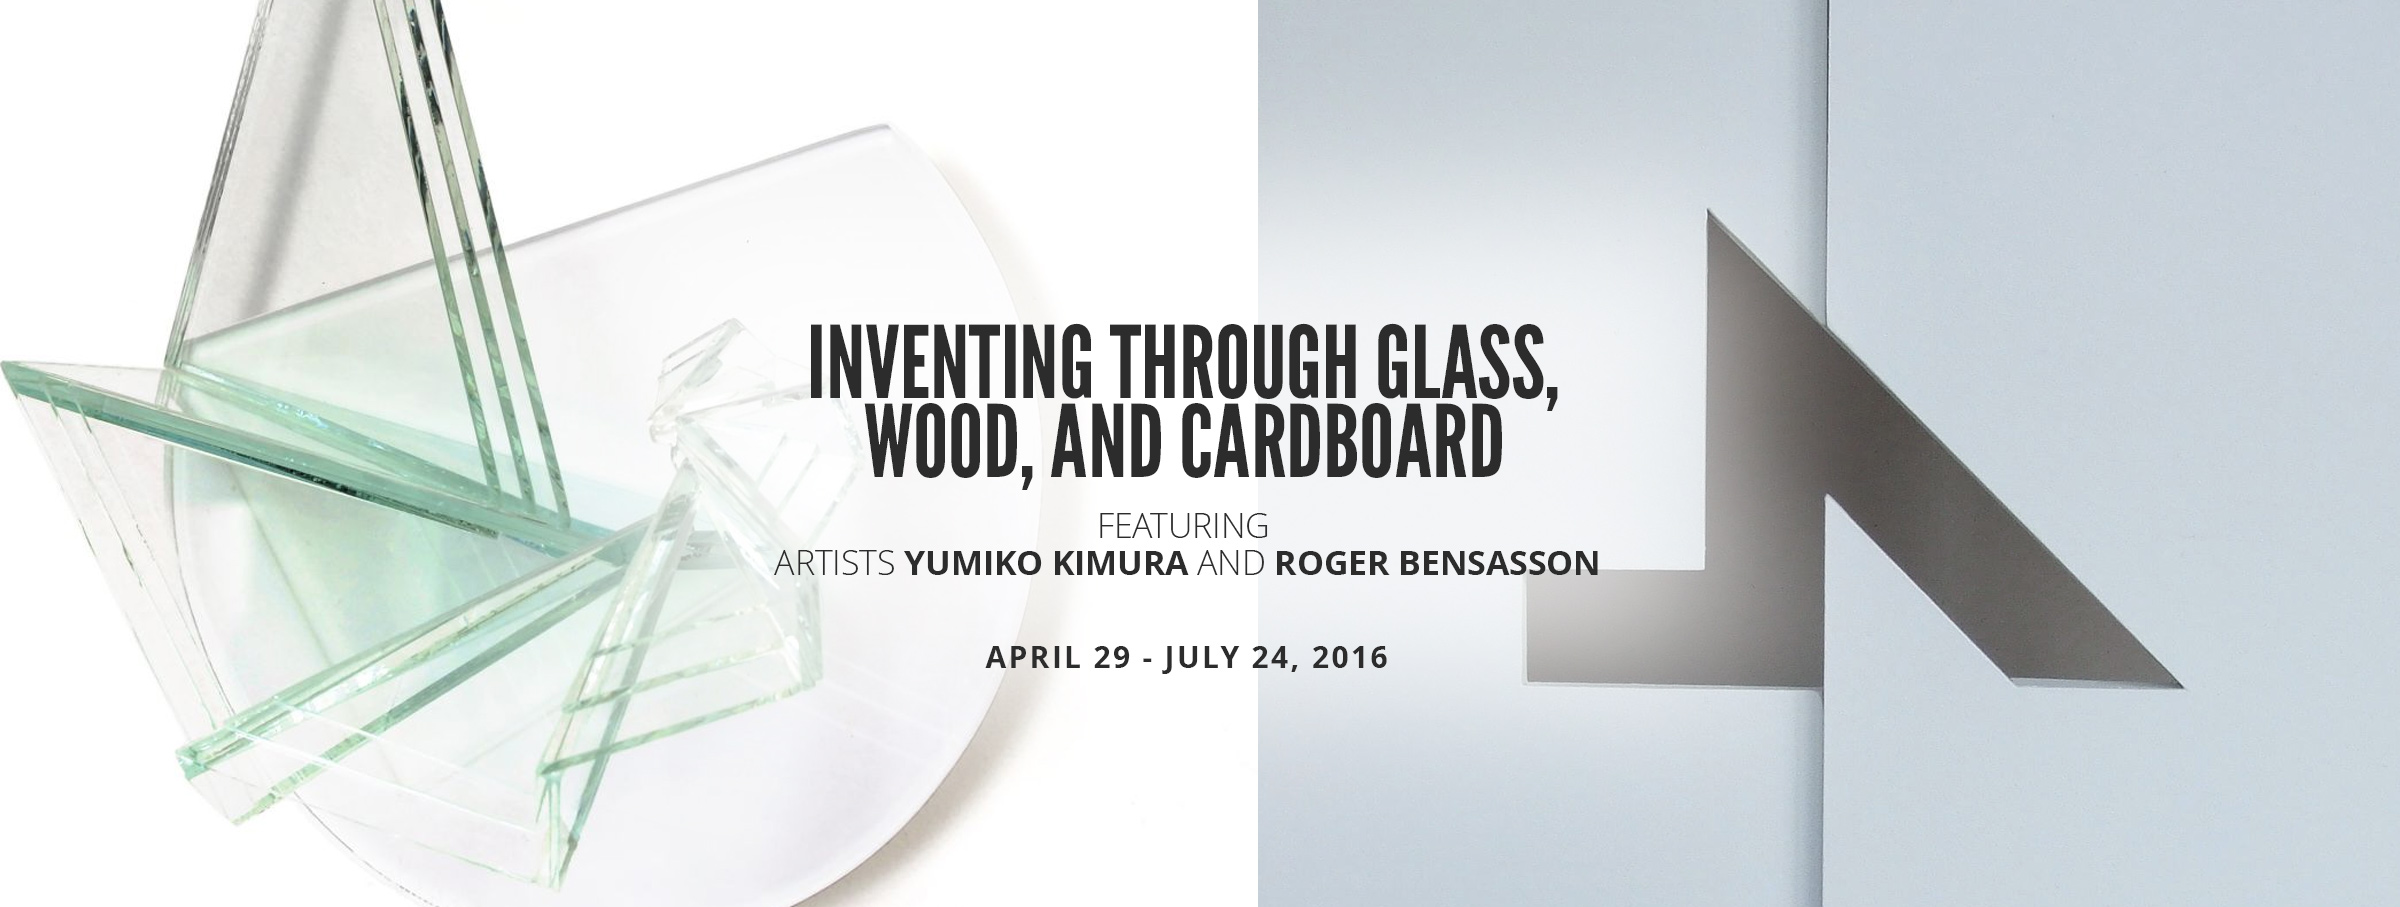 Free things to do in Dallas - Roger Bensasson and Yumiko Kimuri at the Museum of Geometric and MADI Art